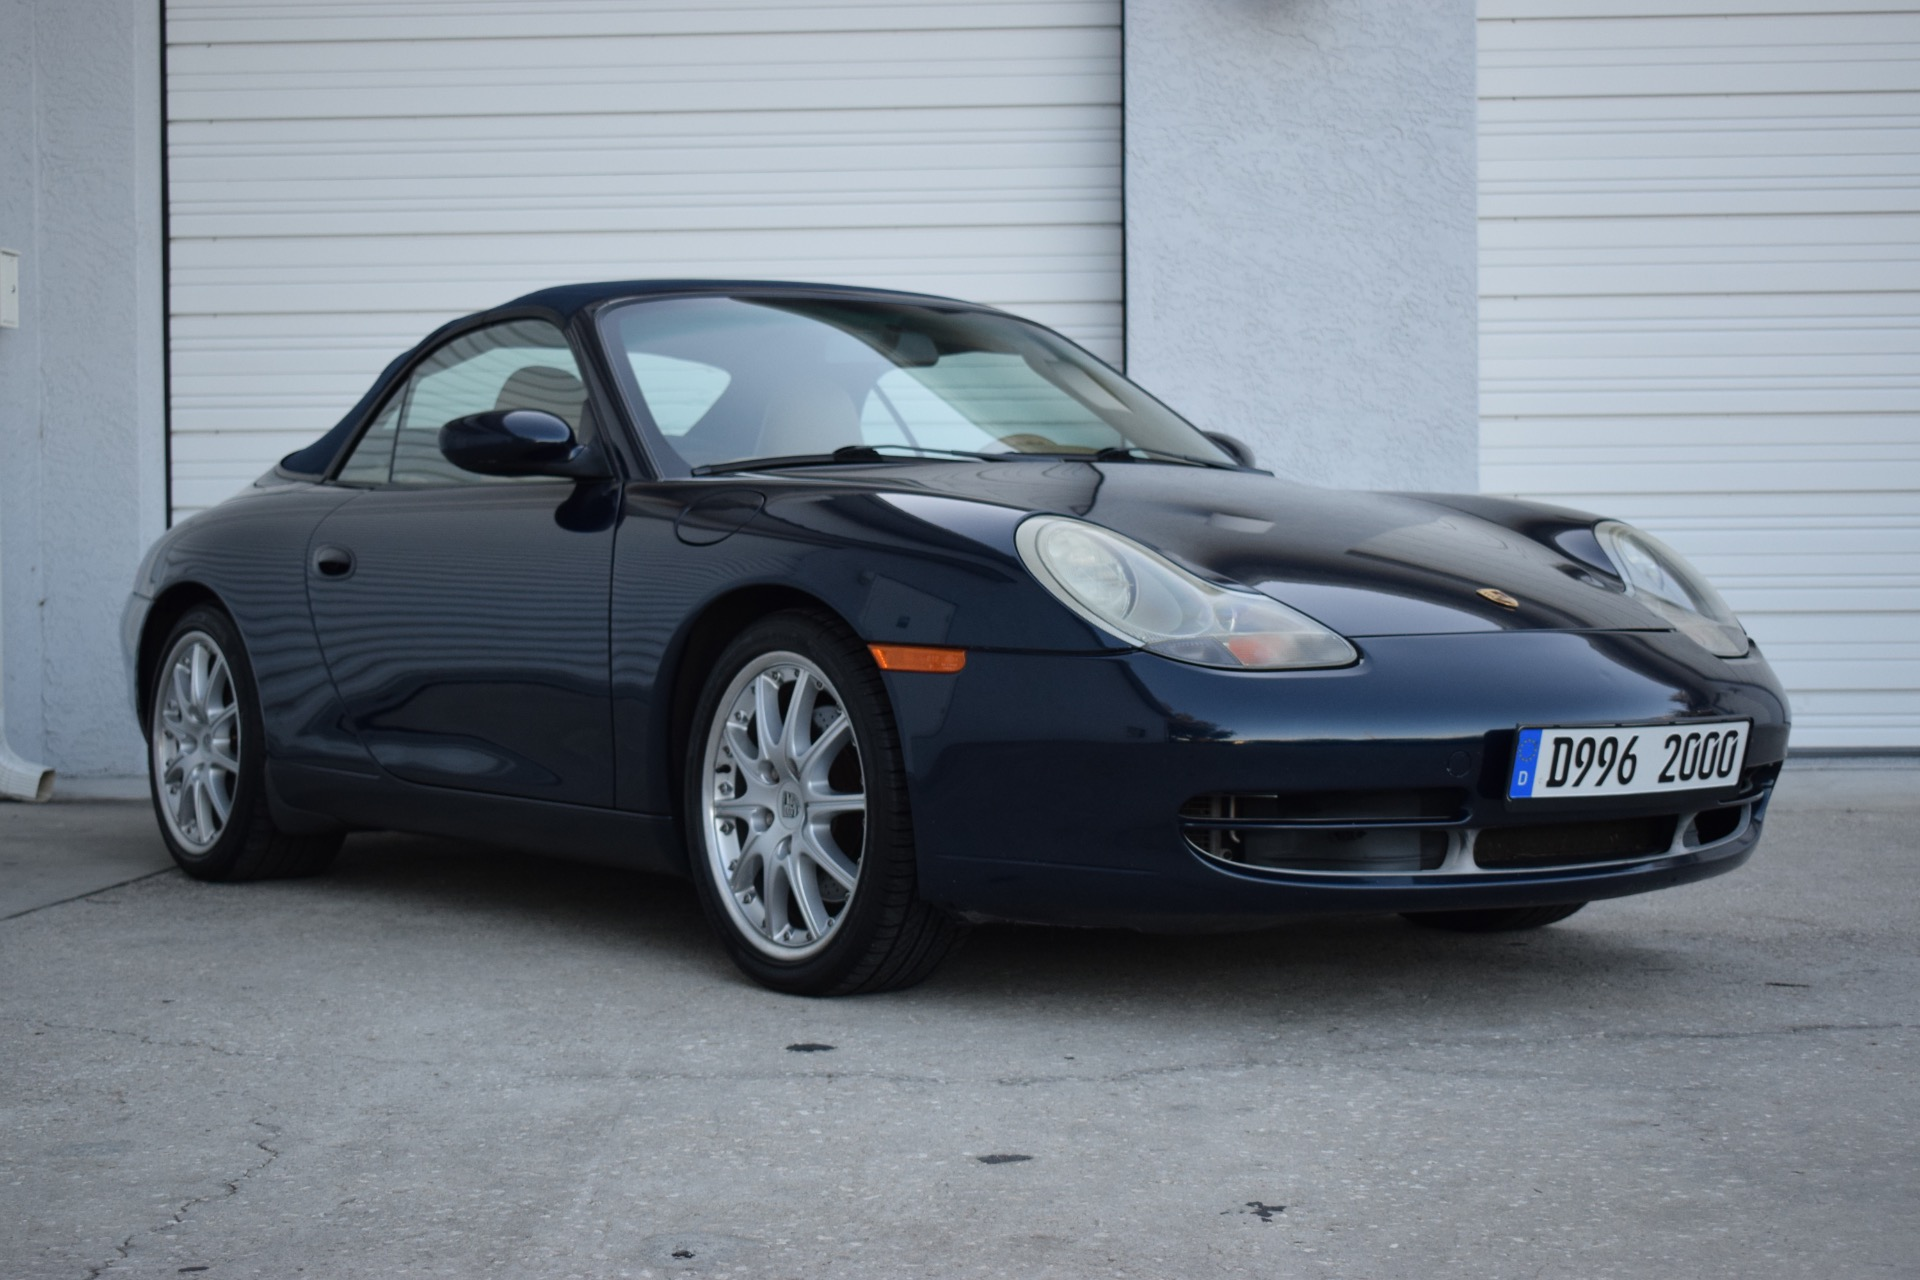 New 2000 Porsche 911 Carrera Cabriolet 2D for sale $19,497 at Track and Field Motors in Safety Harbor FL